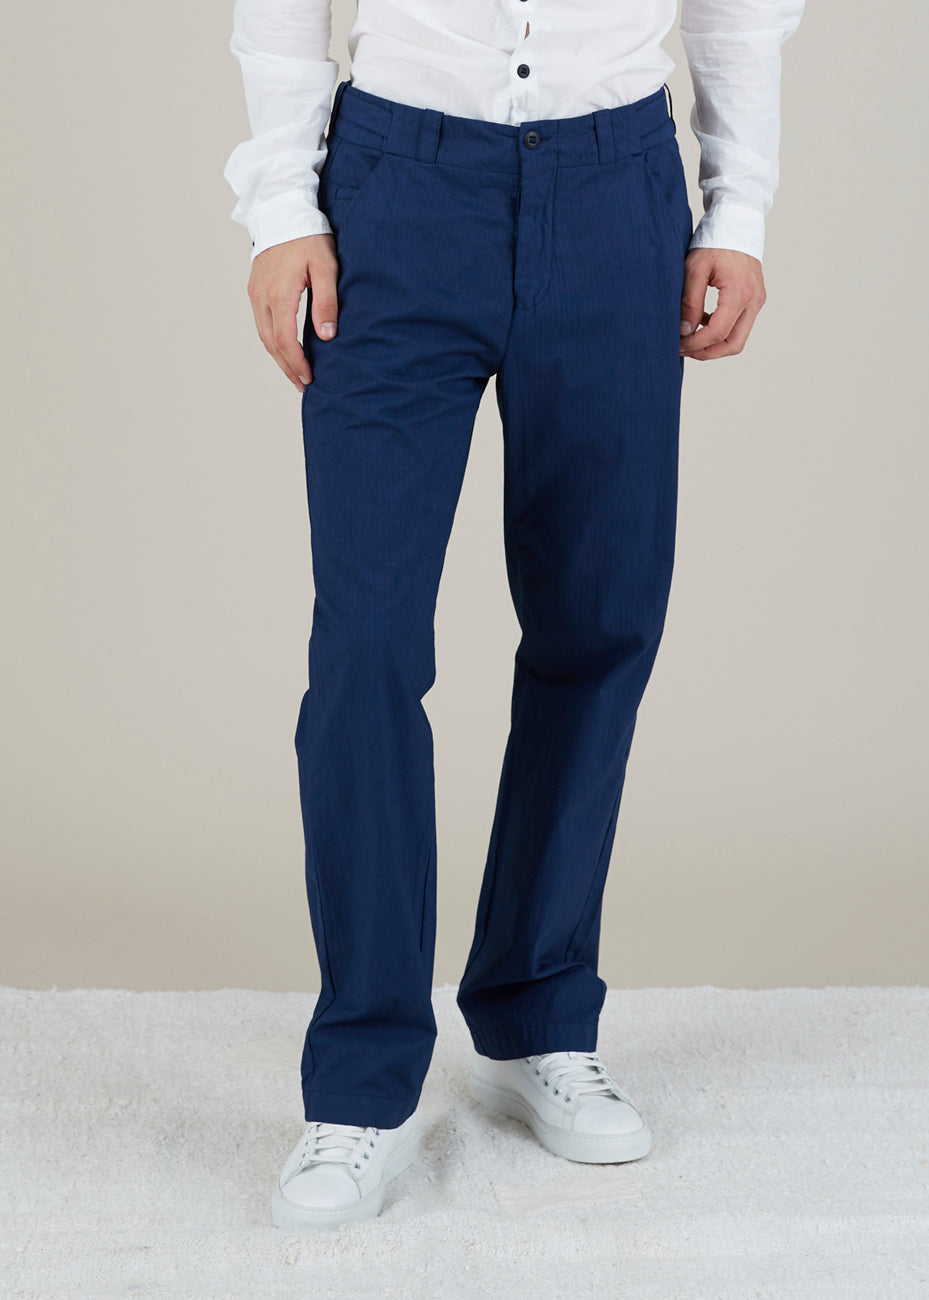 Hannes Roether Men's Tampas Pinstripe Trouser